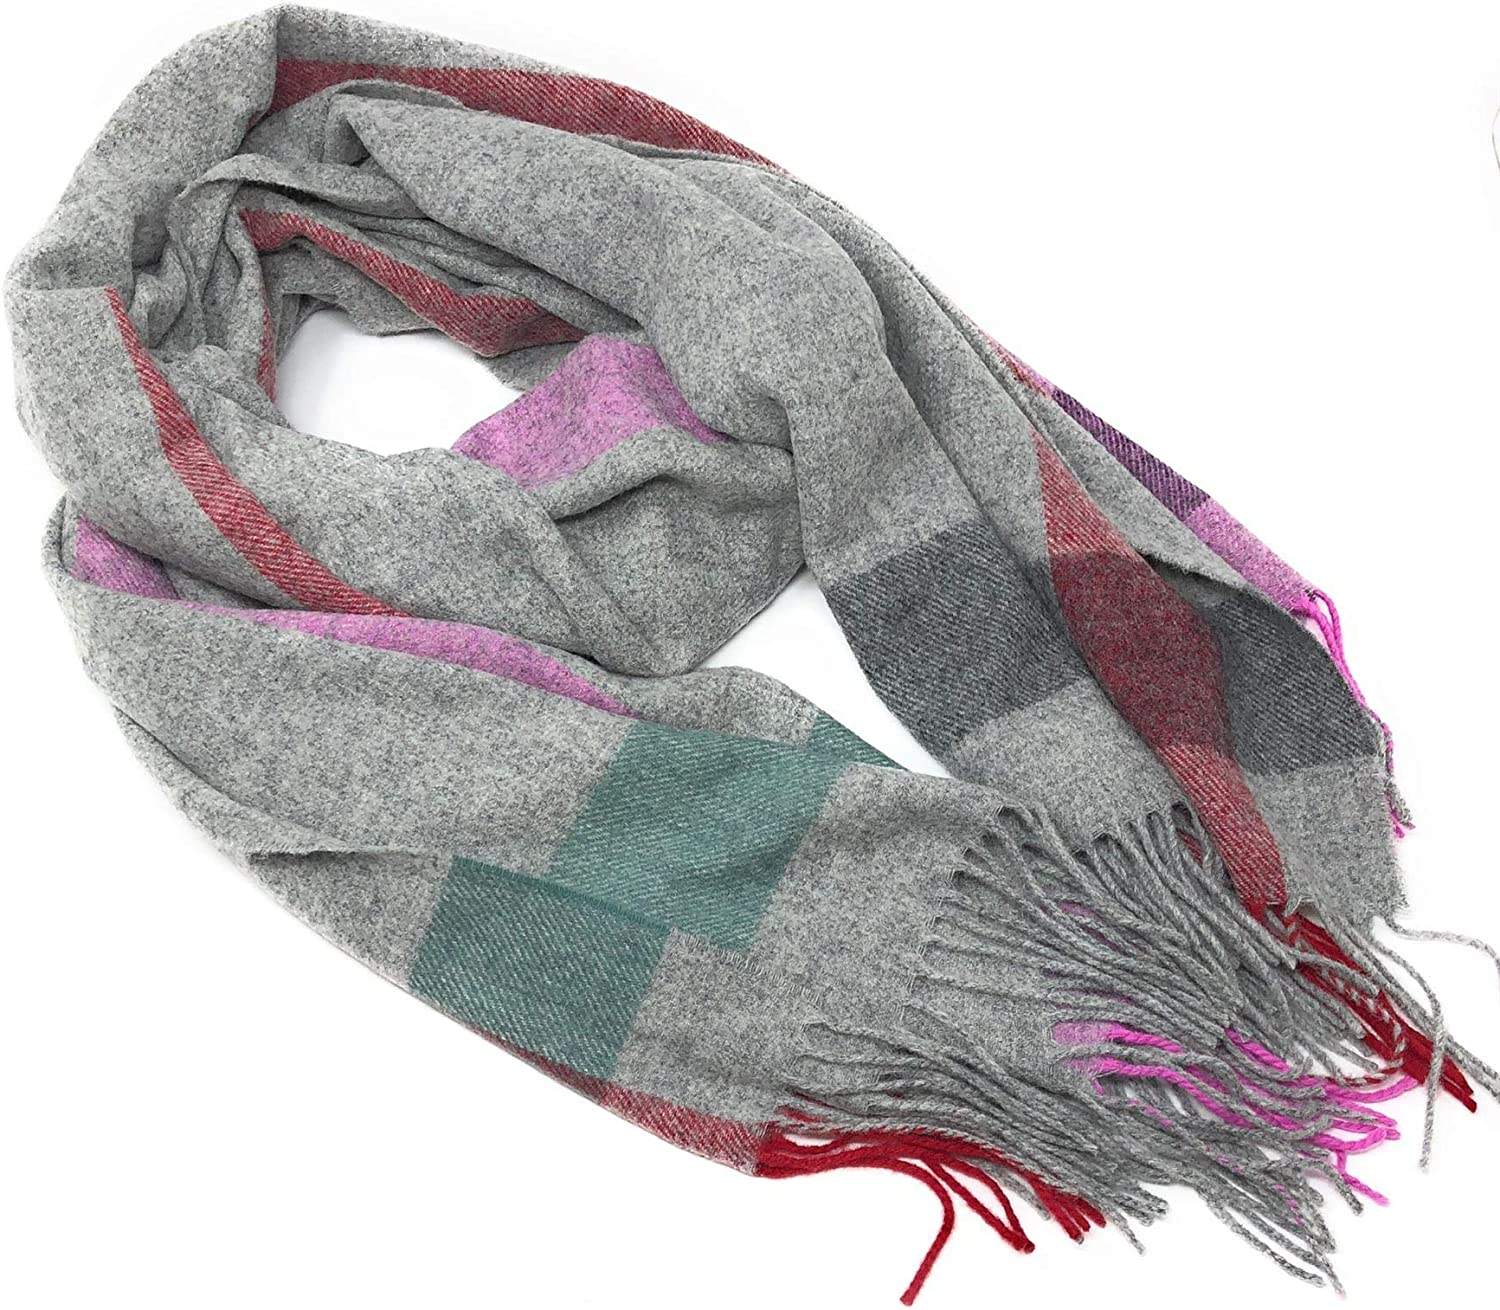 100% Lambswool Oversized Blanket Style Scarf Wrap  Grey Pink & Red Check  Made in Scotland